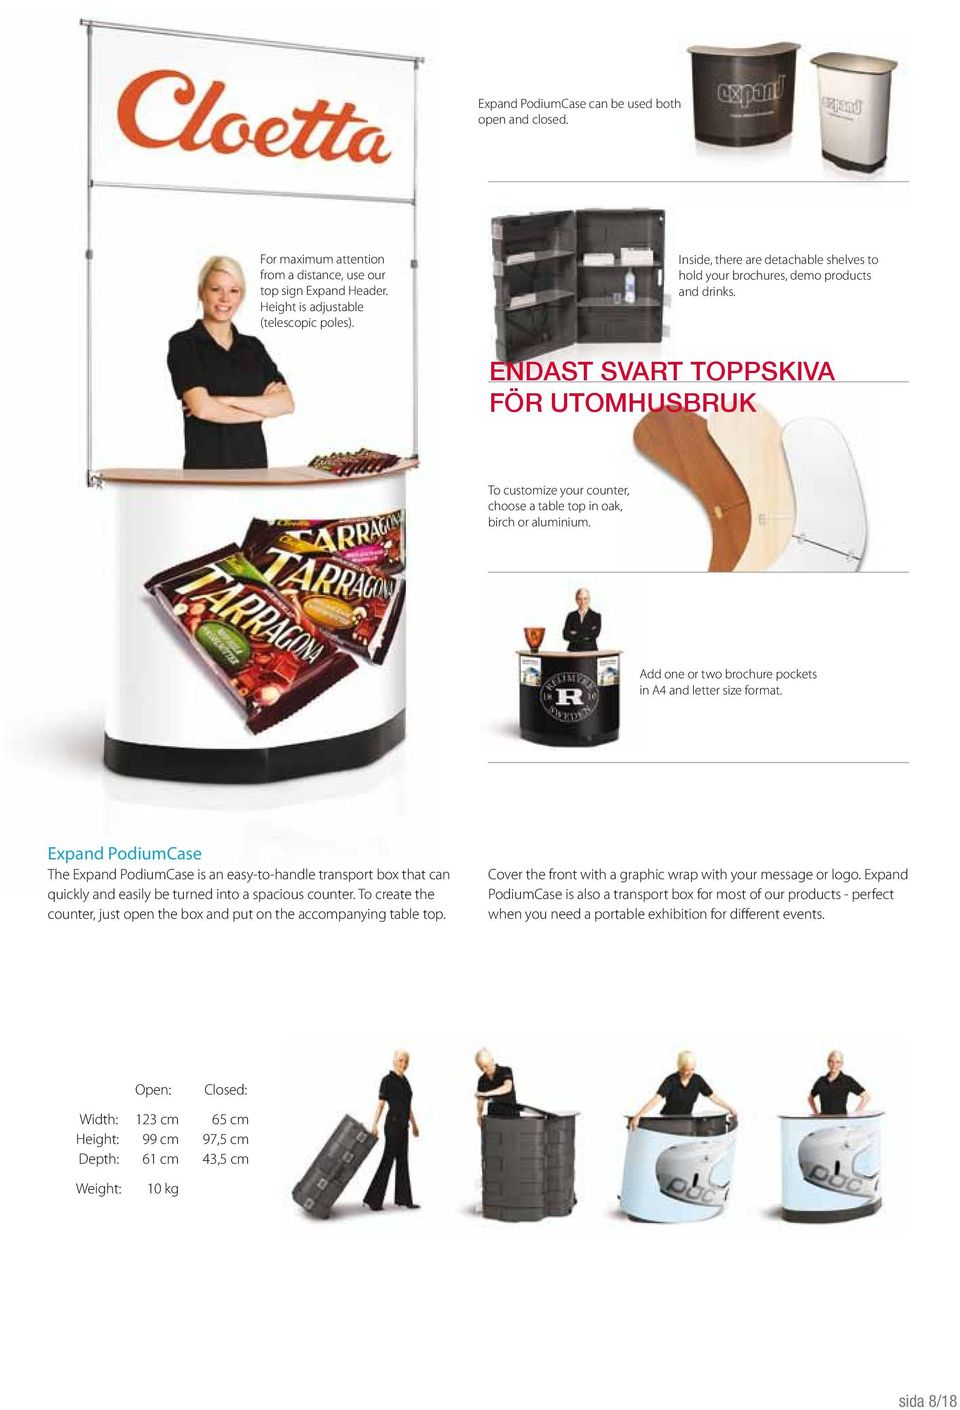 Add one or two brochure pockets in A4 and letter size format. Expand PodiumCase The Expand PodiumCase is an easy-to-handle transport box that can quickly and easily be turned into a spacious counter.